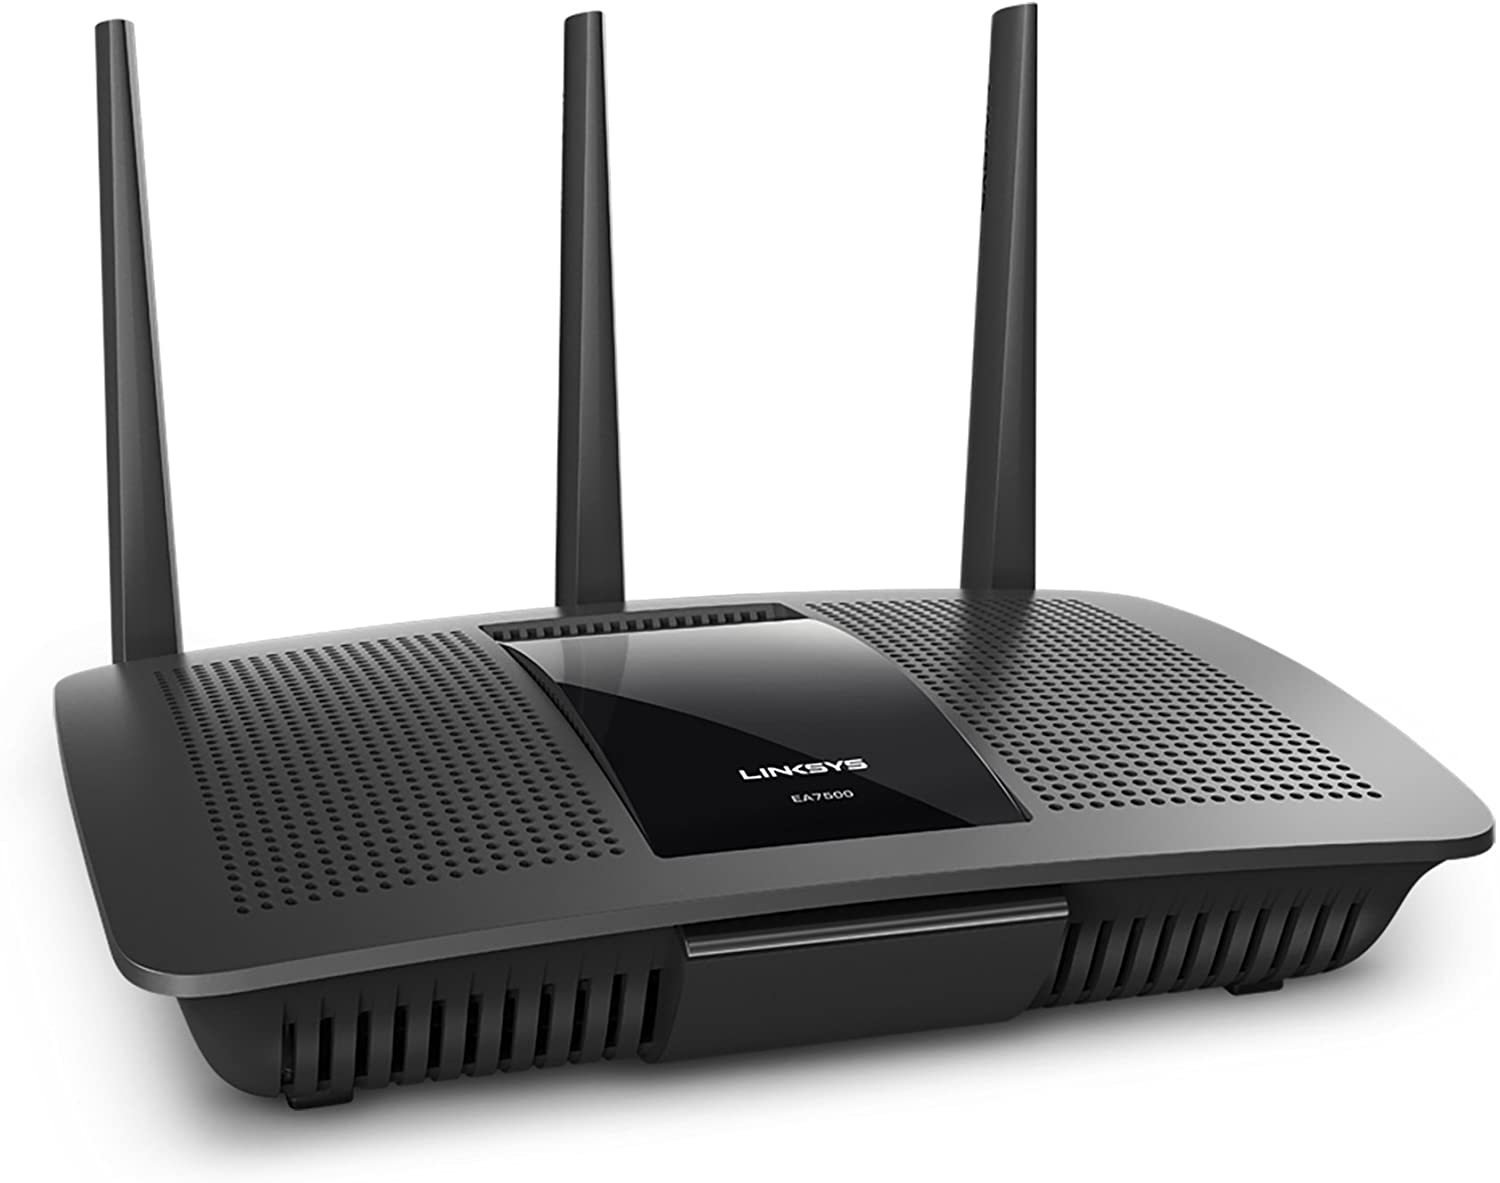 Linksys EA7500 Dual-Band Wi-Fi Router for Home